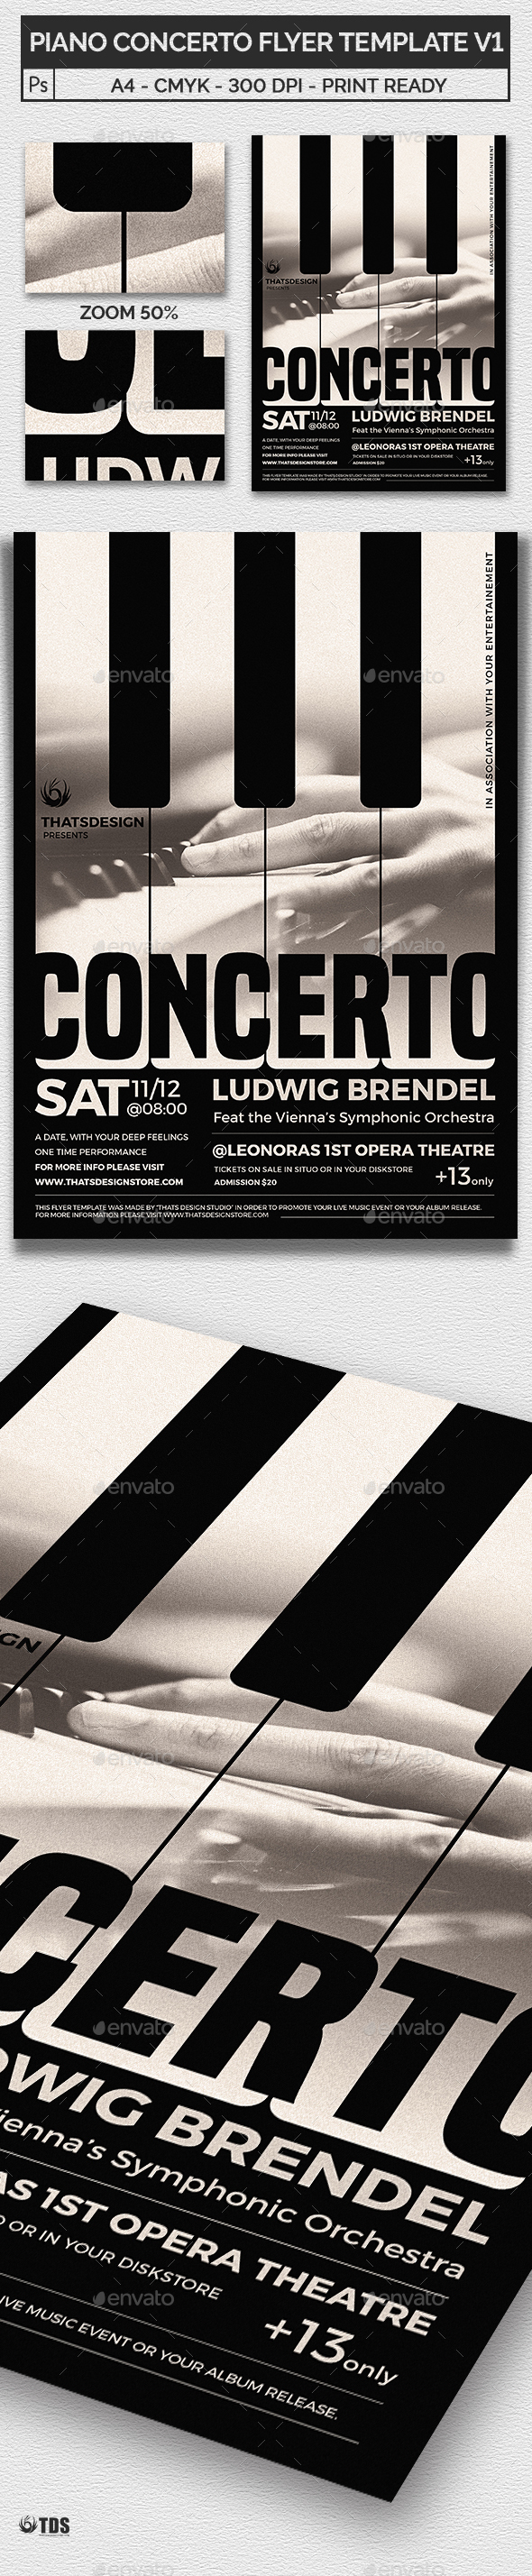 Piano Concerto Flyer Template V1 - Concerts Events